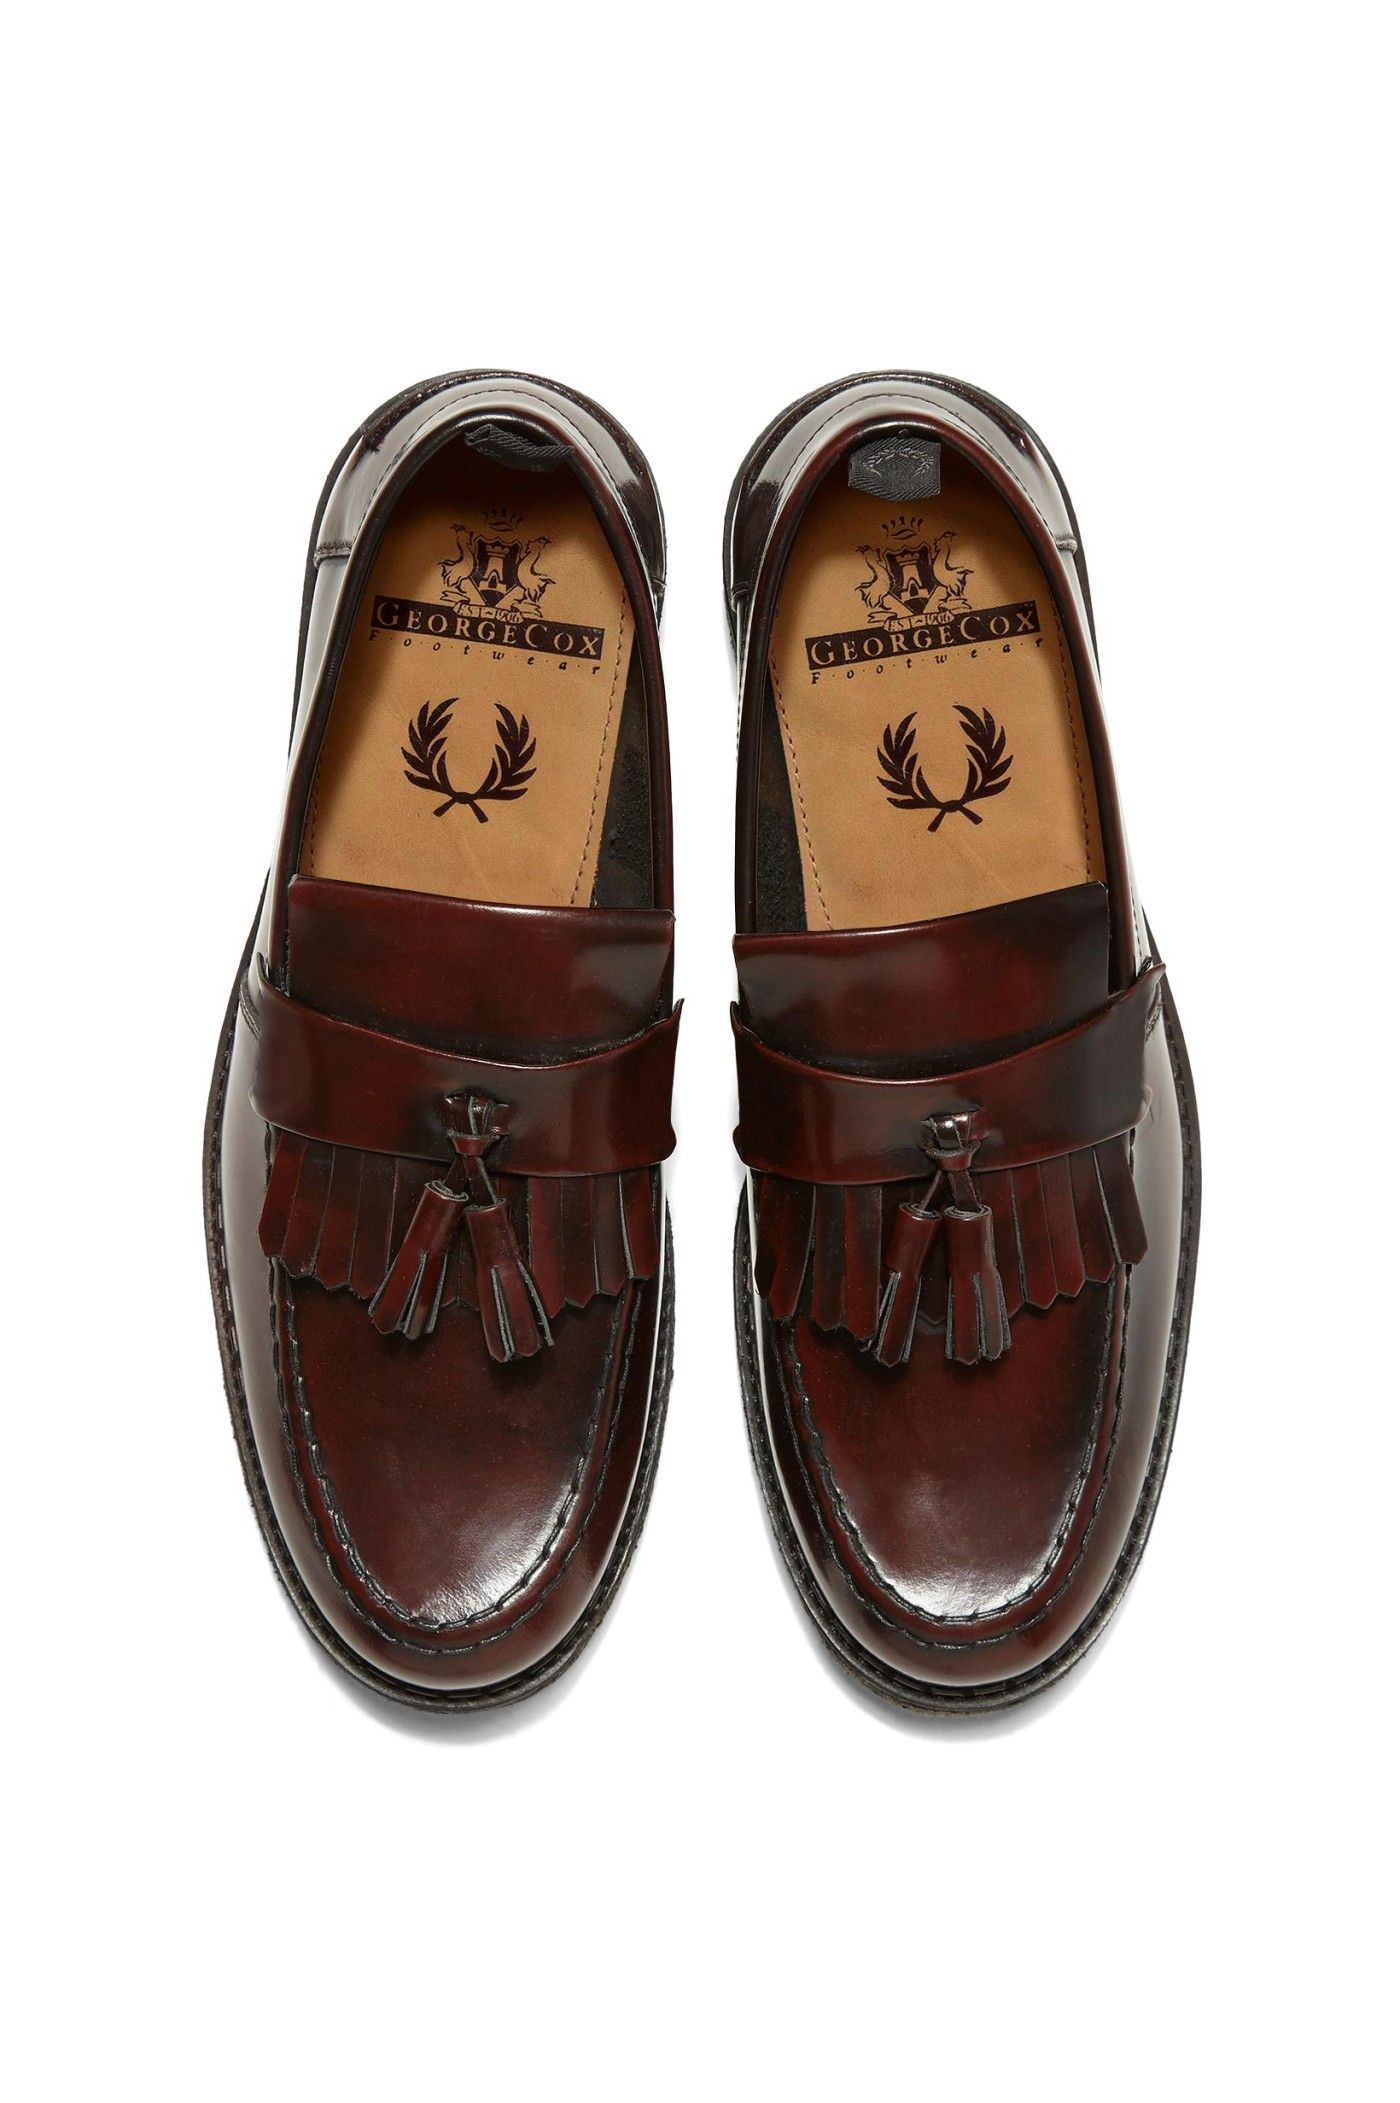 20ce95d4b482b Fred Perry - Fred Perry x George Cox Tassel Loafer Ox Blood